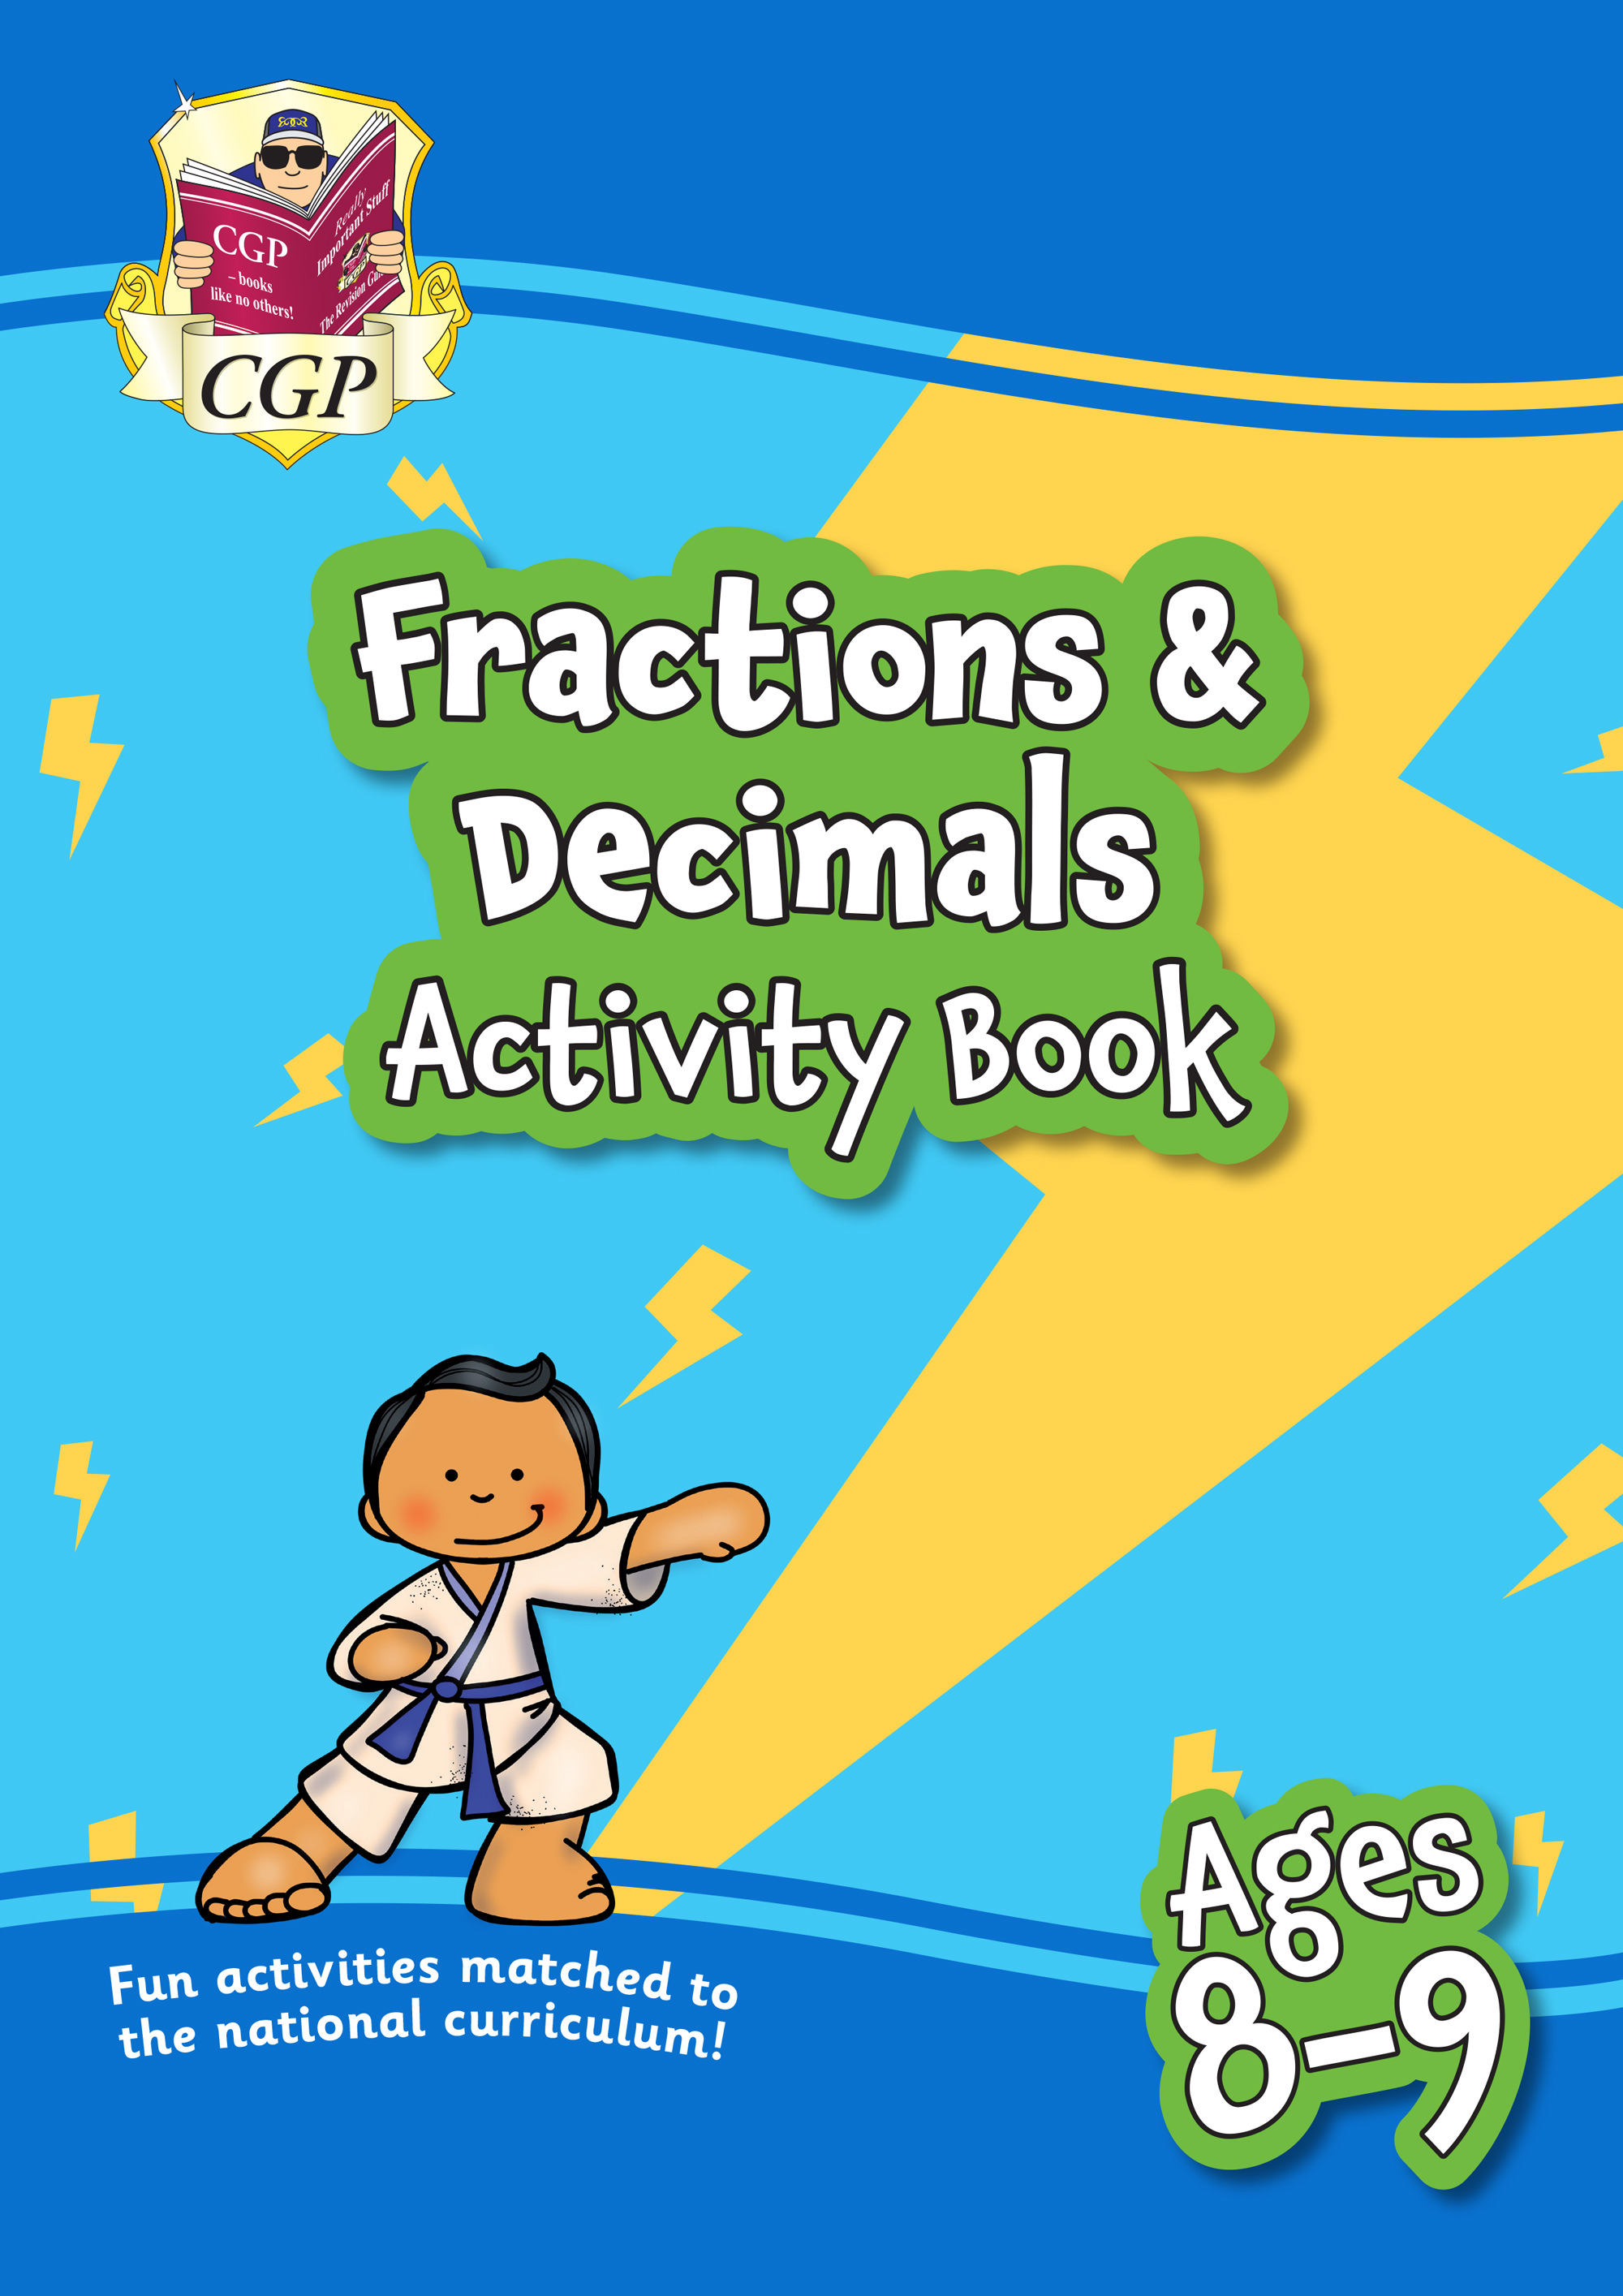 MPFFD4Q21 - New Fractions & Decimals Maths Activity Book for Ages 8-9: Perfect for Catch-Up and Home